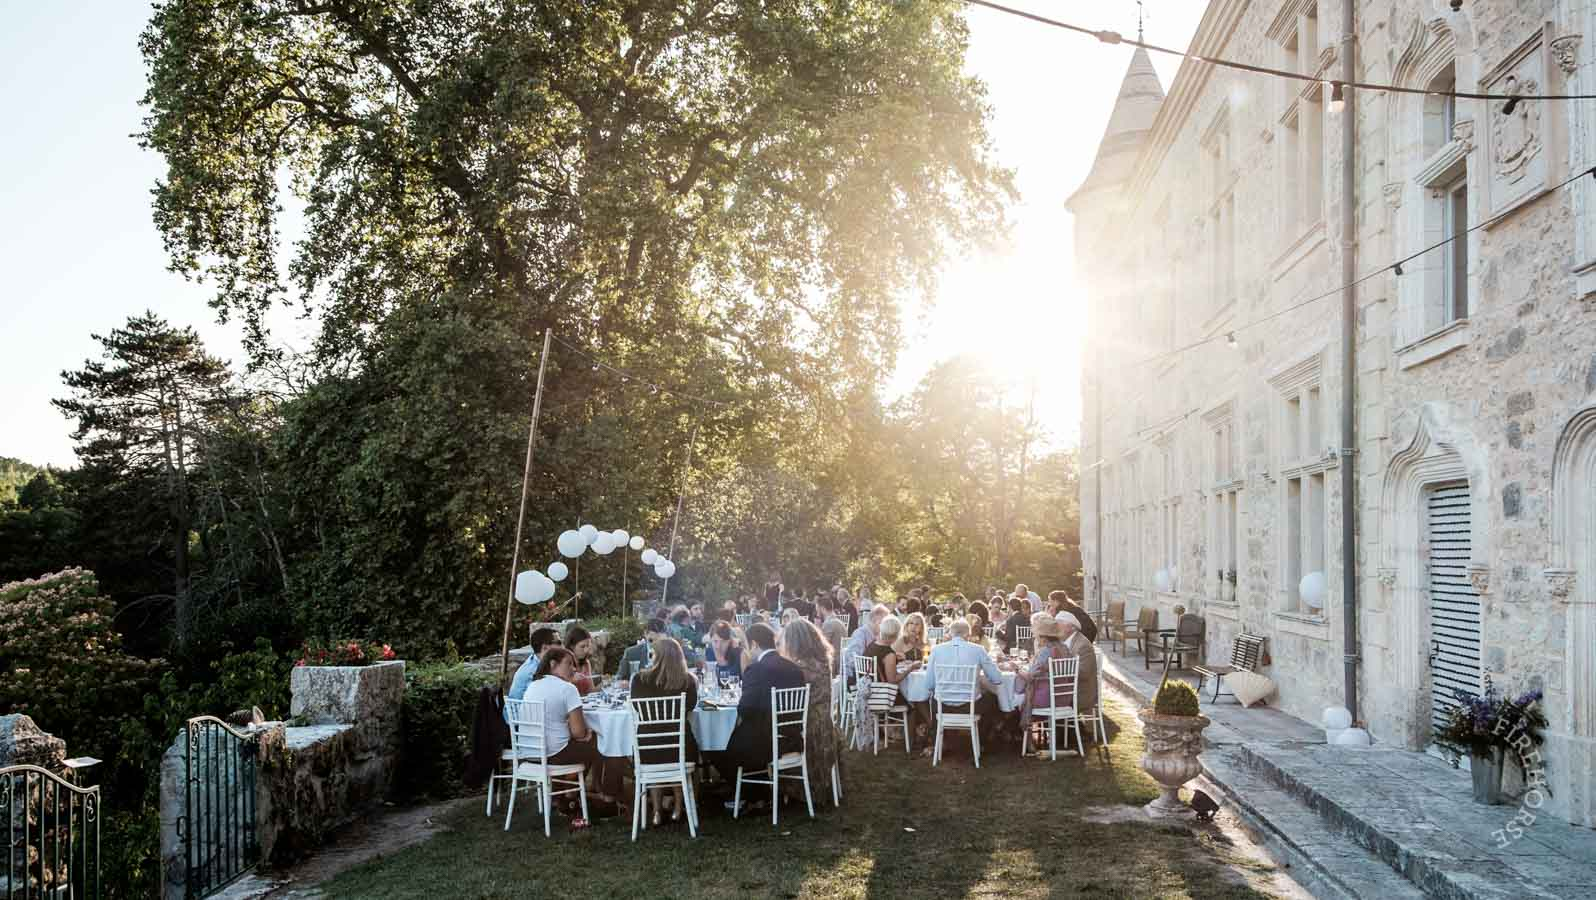 Lot-et-Garonne-Wedding-Photography-302